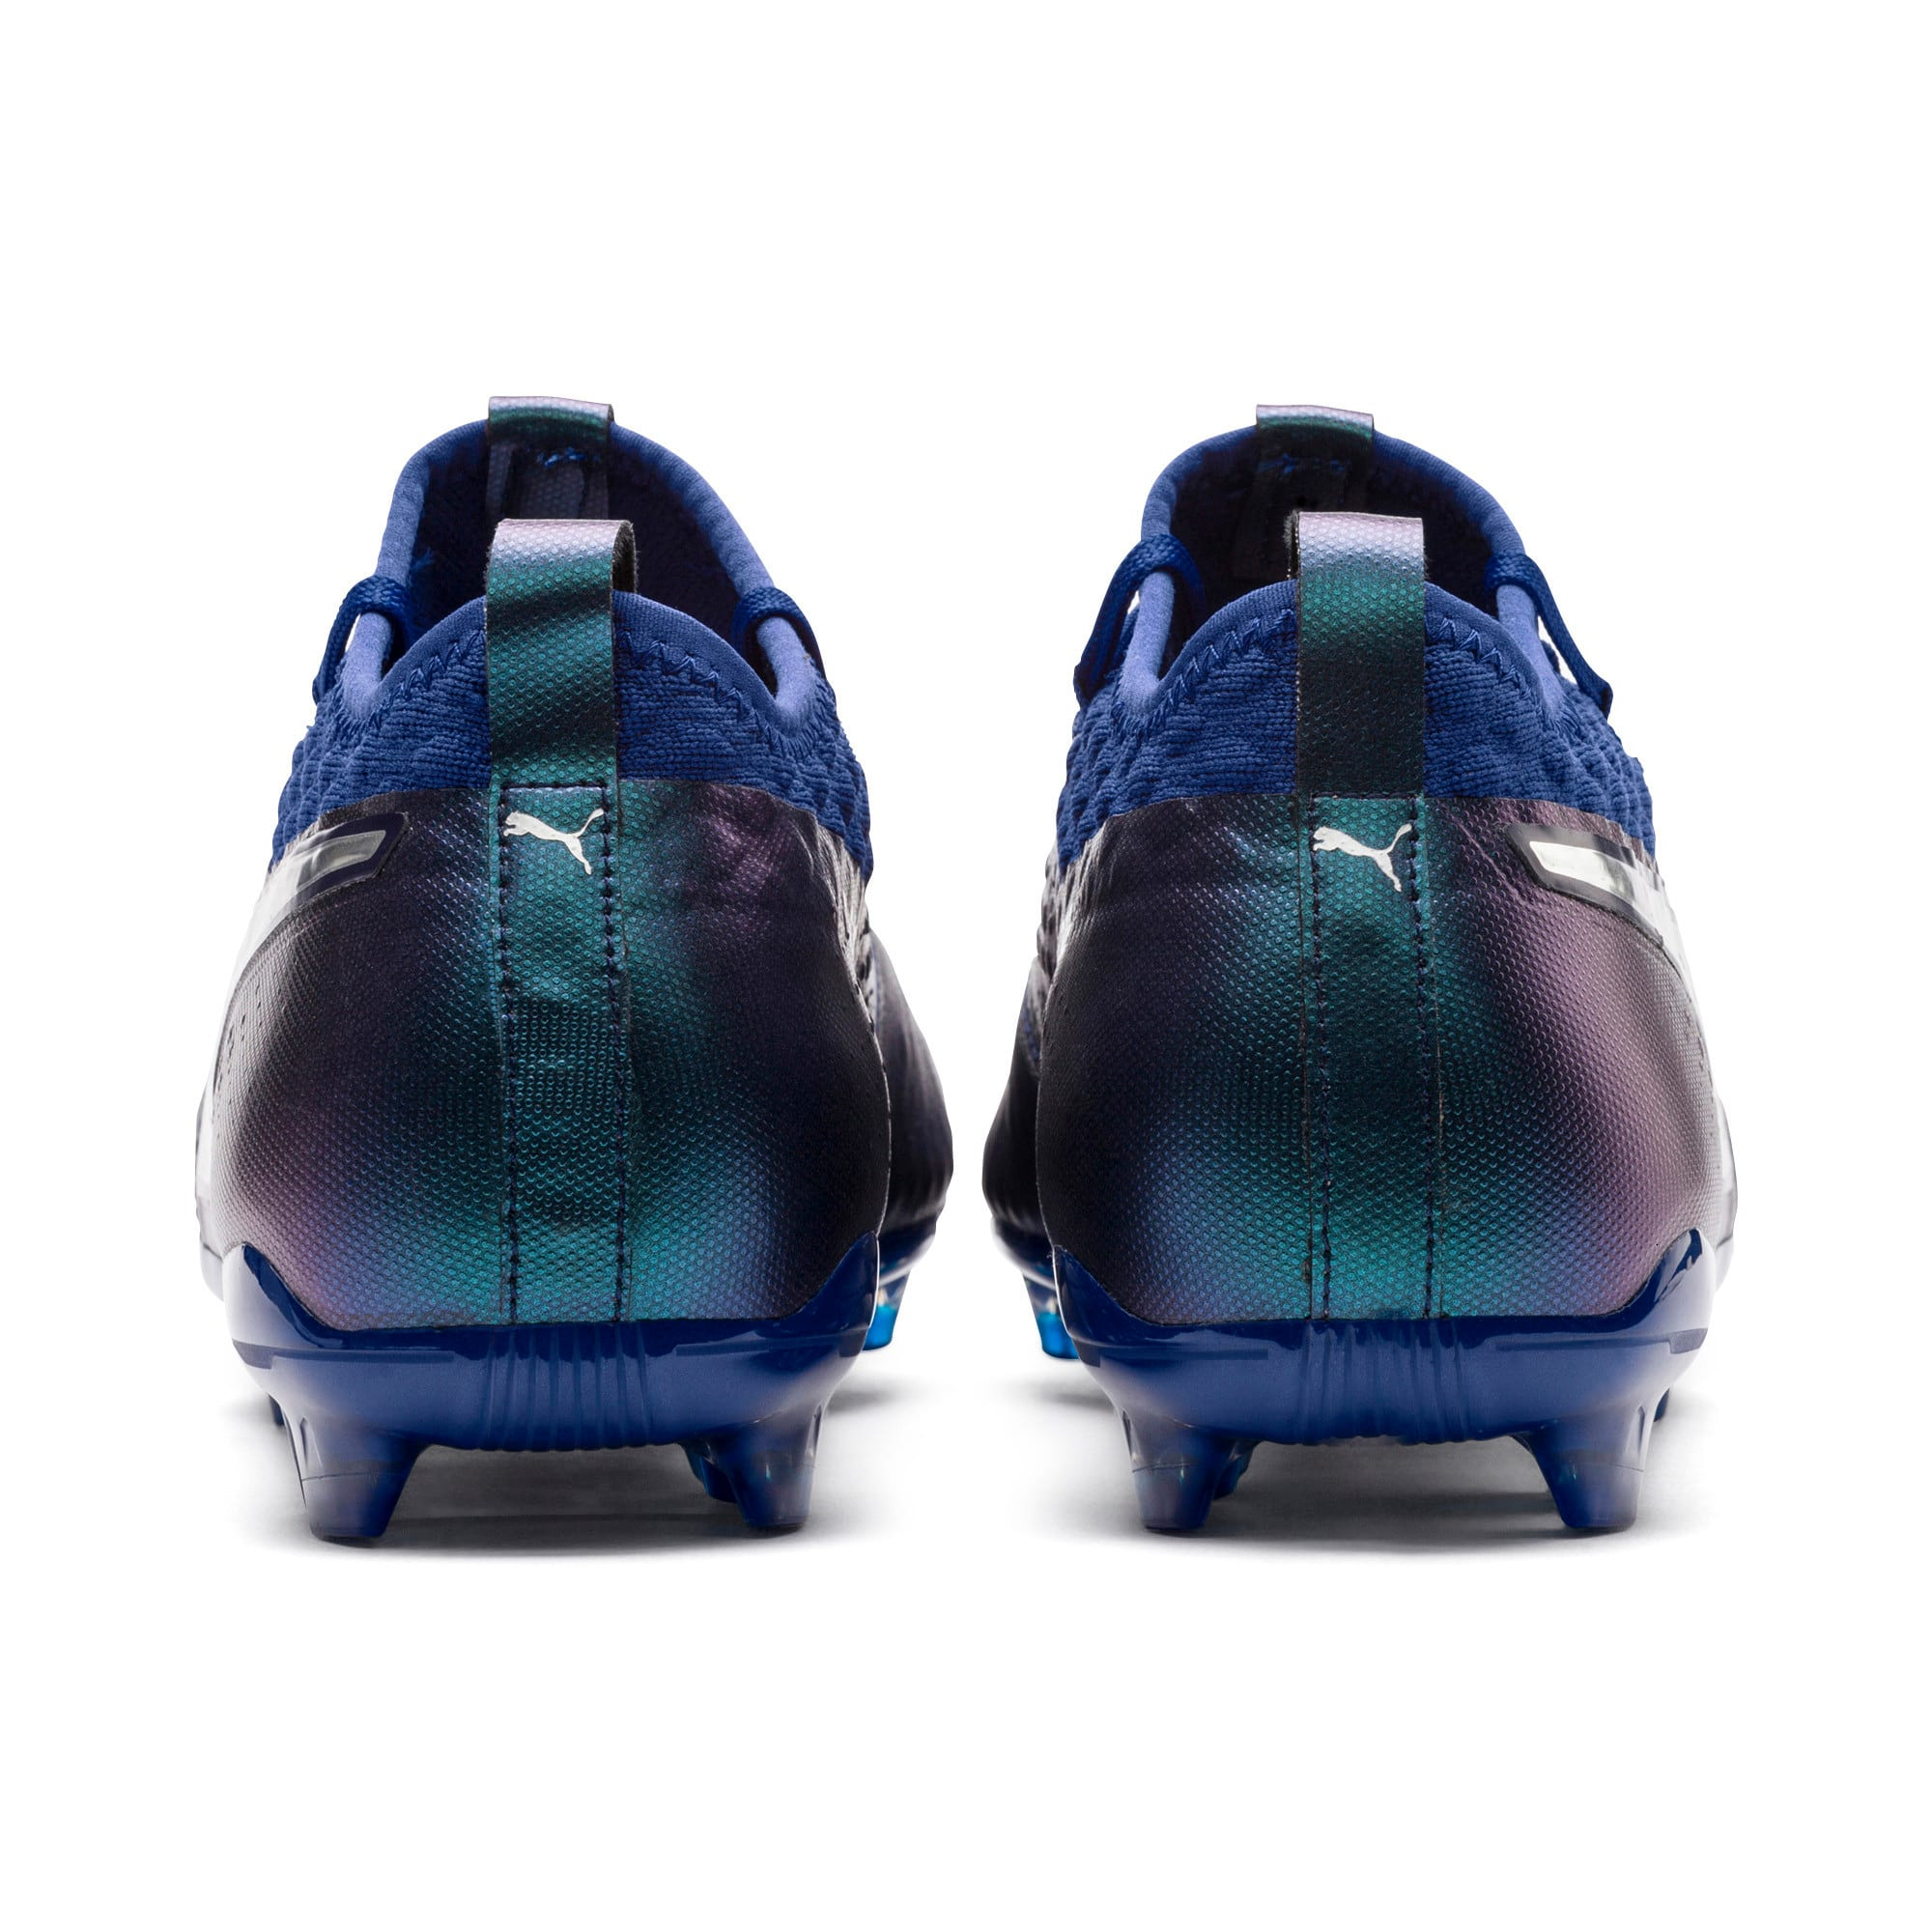 Thumbnail 3 of PUMA ONE 2 Leather FG  Football Boots, Blue-Silver-Peacoat, medium-IND